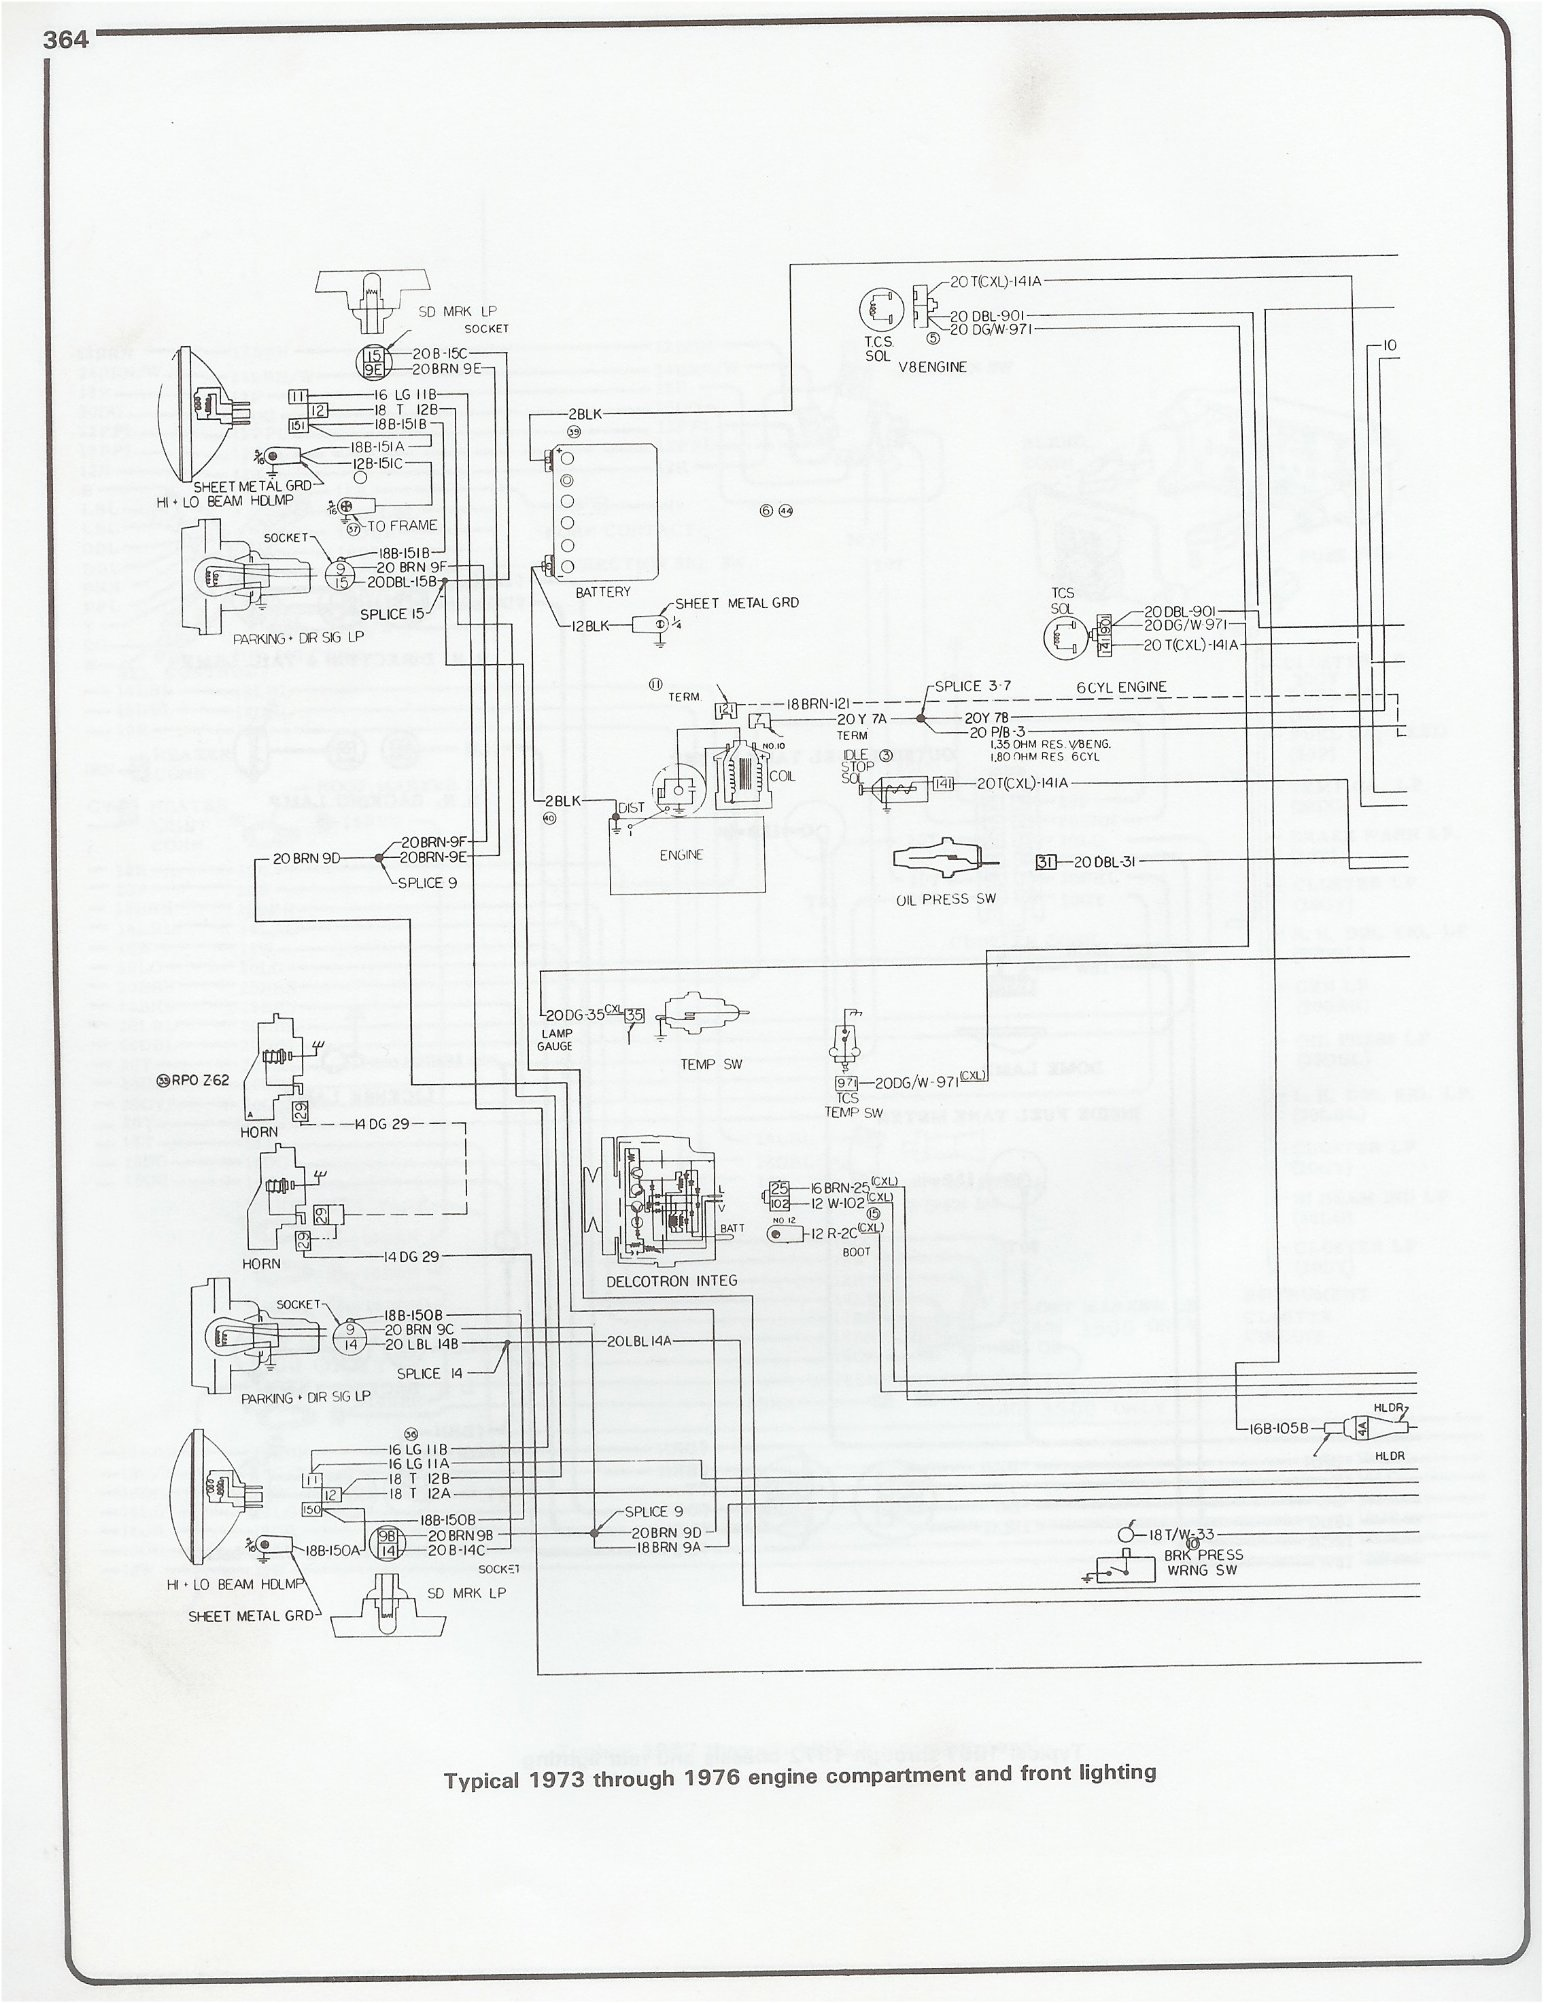 Complete 73 87 Wiring Diagrams 1885 Chevy Hei Distributor Diagram 76 Engine And Front Lighting